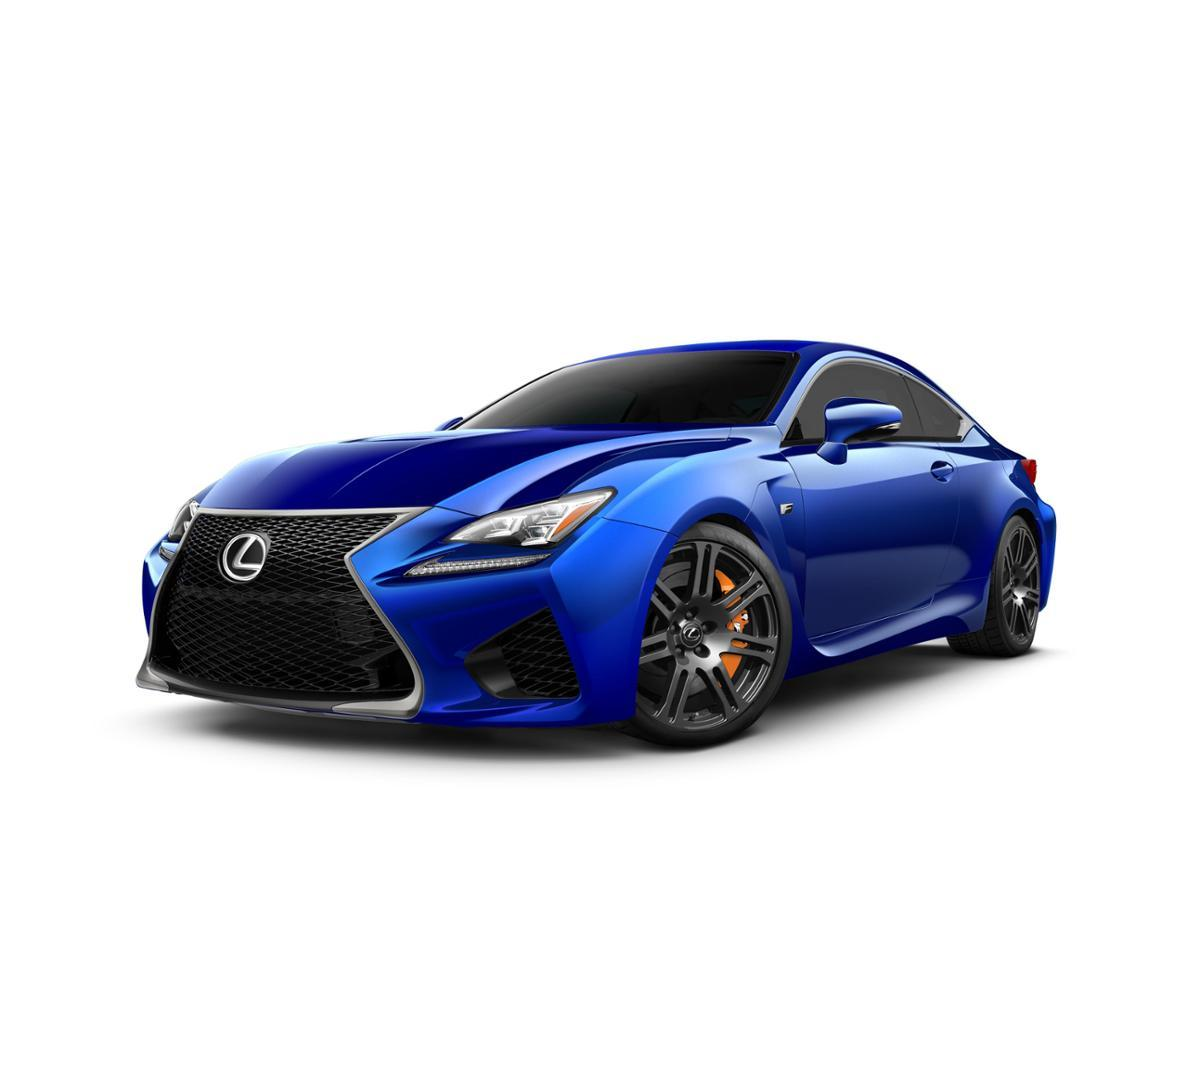 2017 Lexus Rc F For Sale In Charlotte Jthhp5bc5h5005856